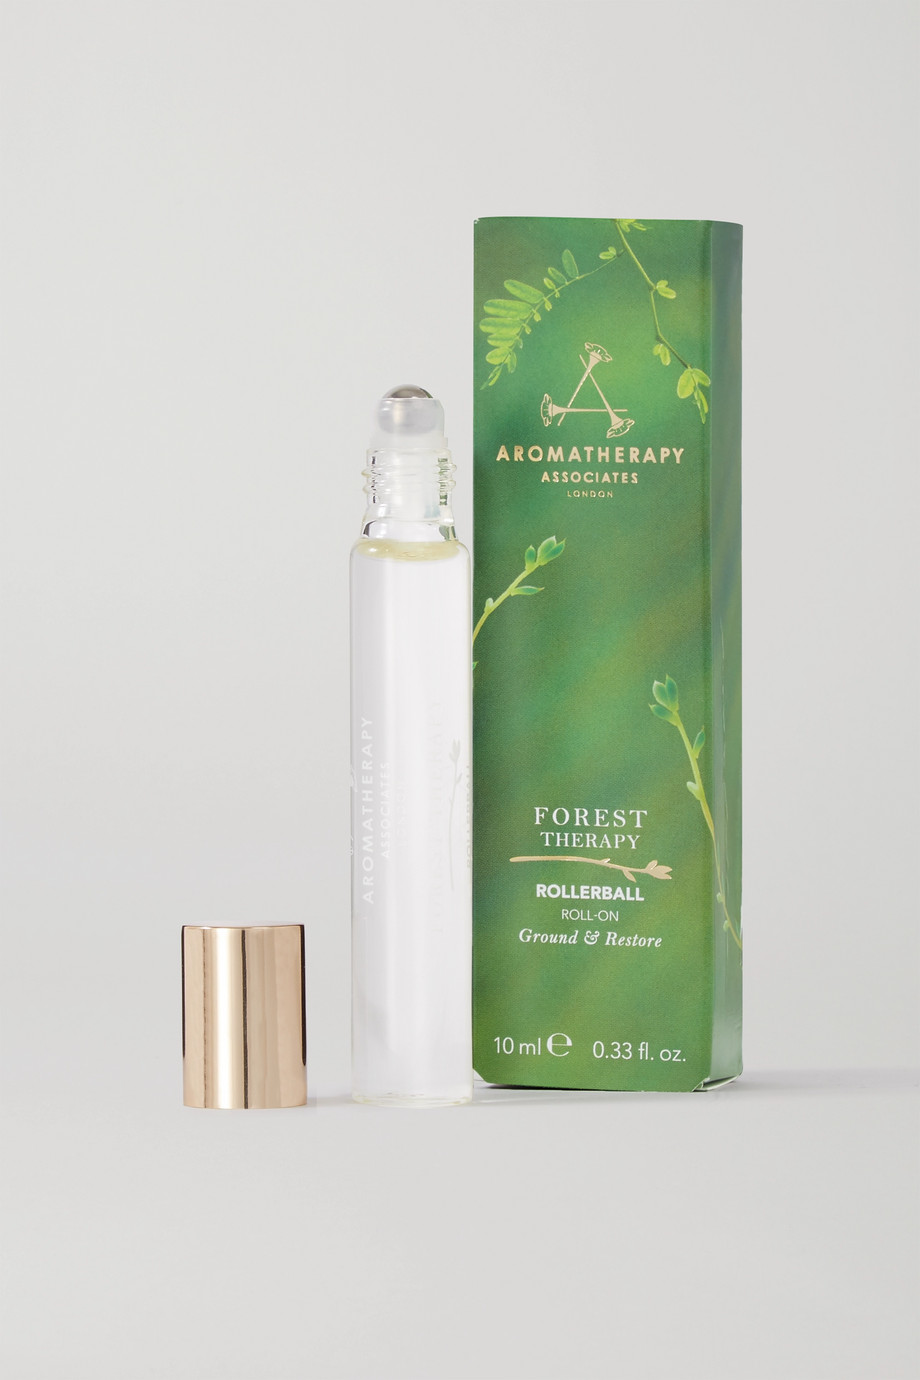 Aromatherapy Associates Huile bien-être roll-on Forest Therapy, 10 ml